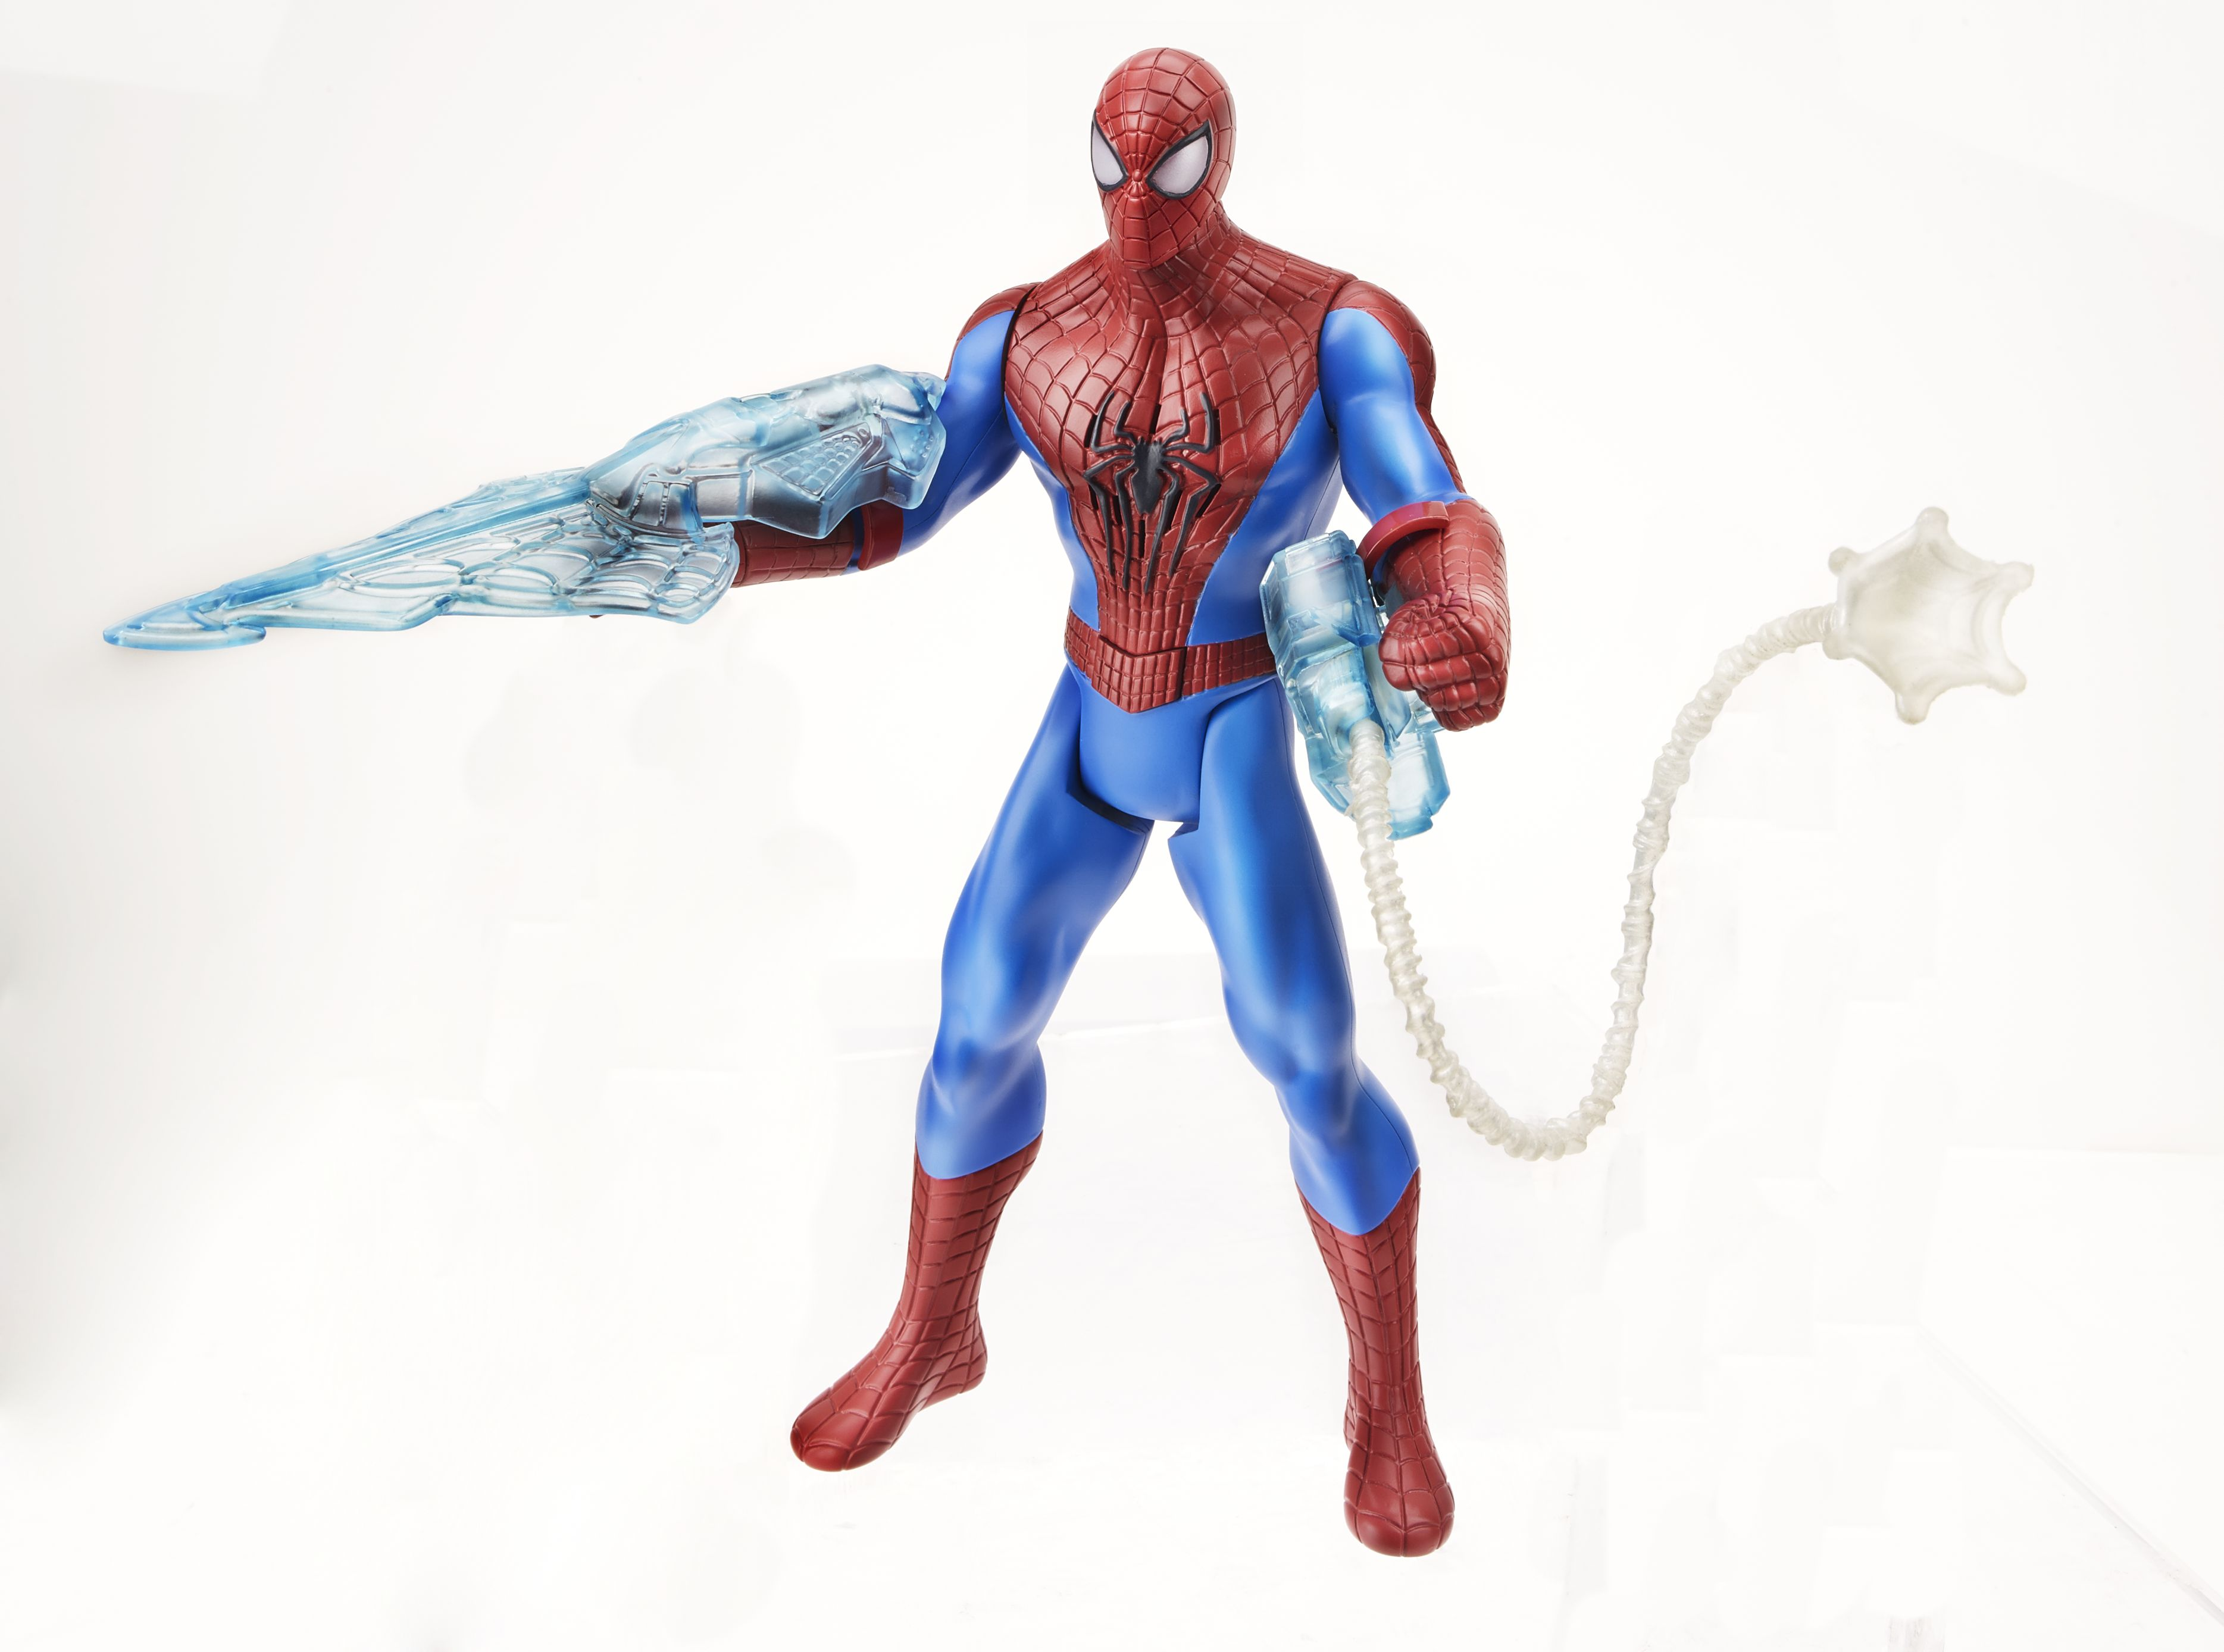 The amazing spider man toys - photo#9